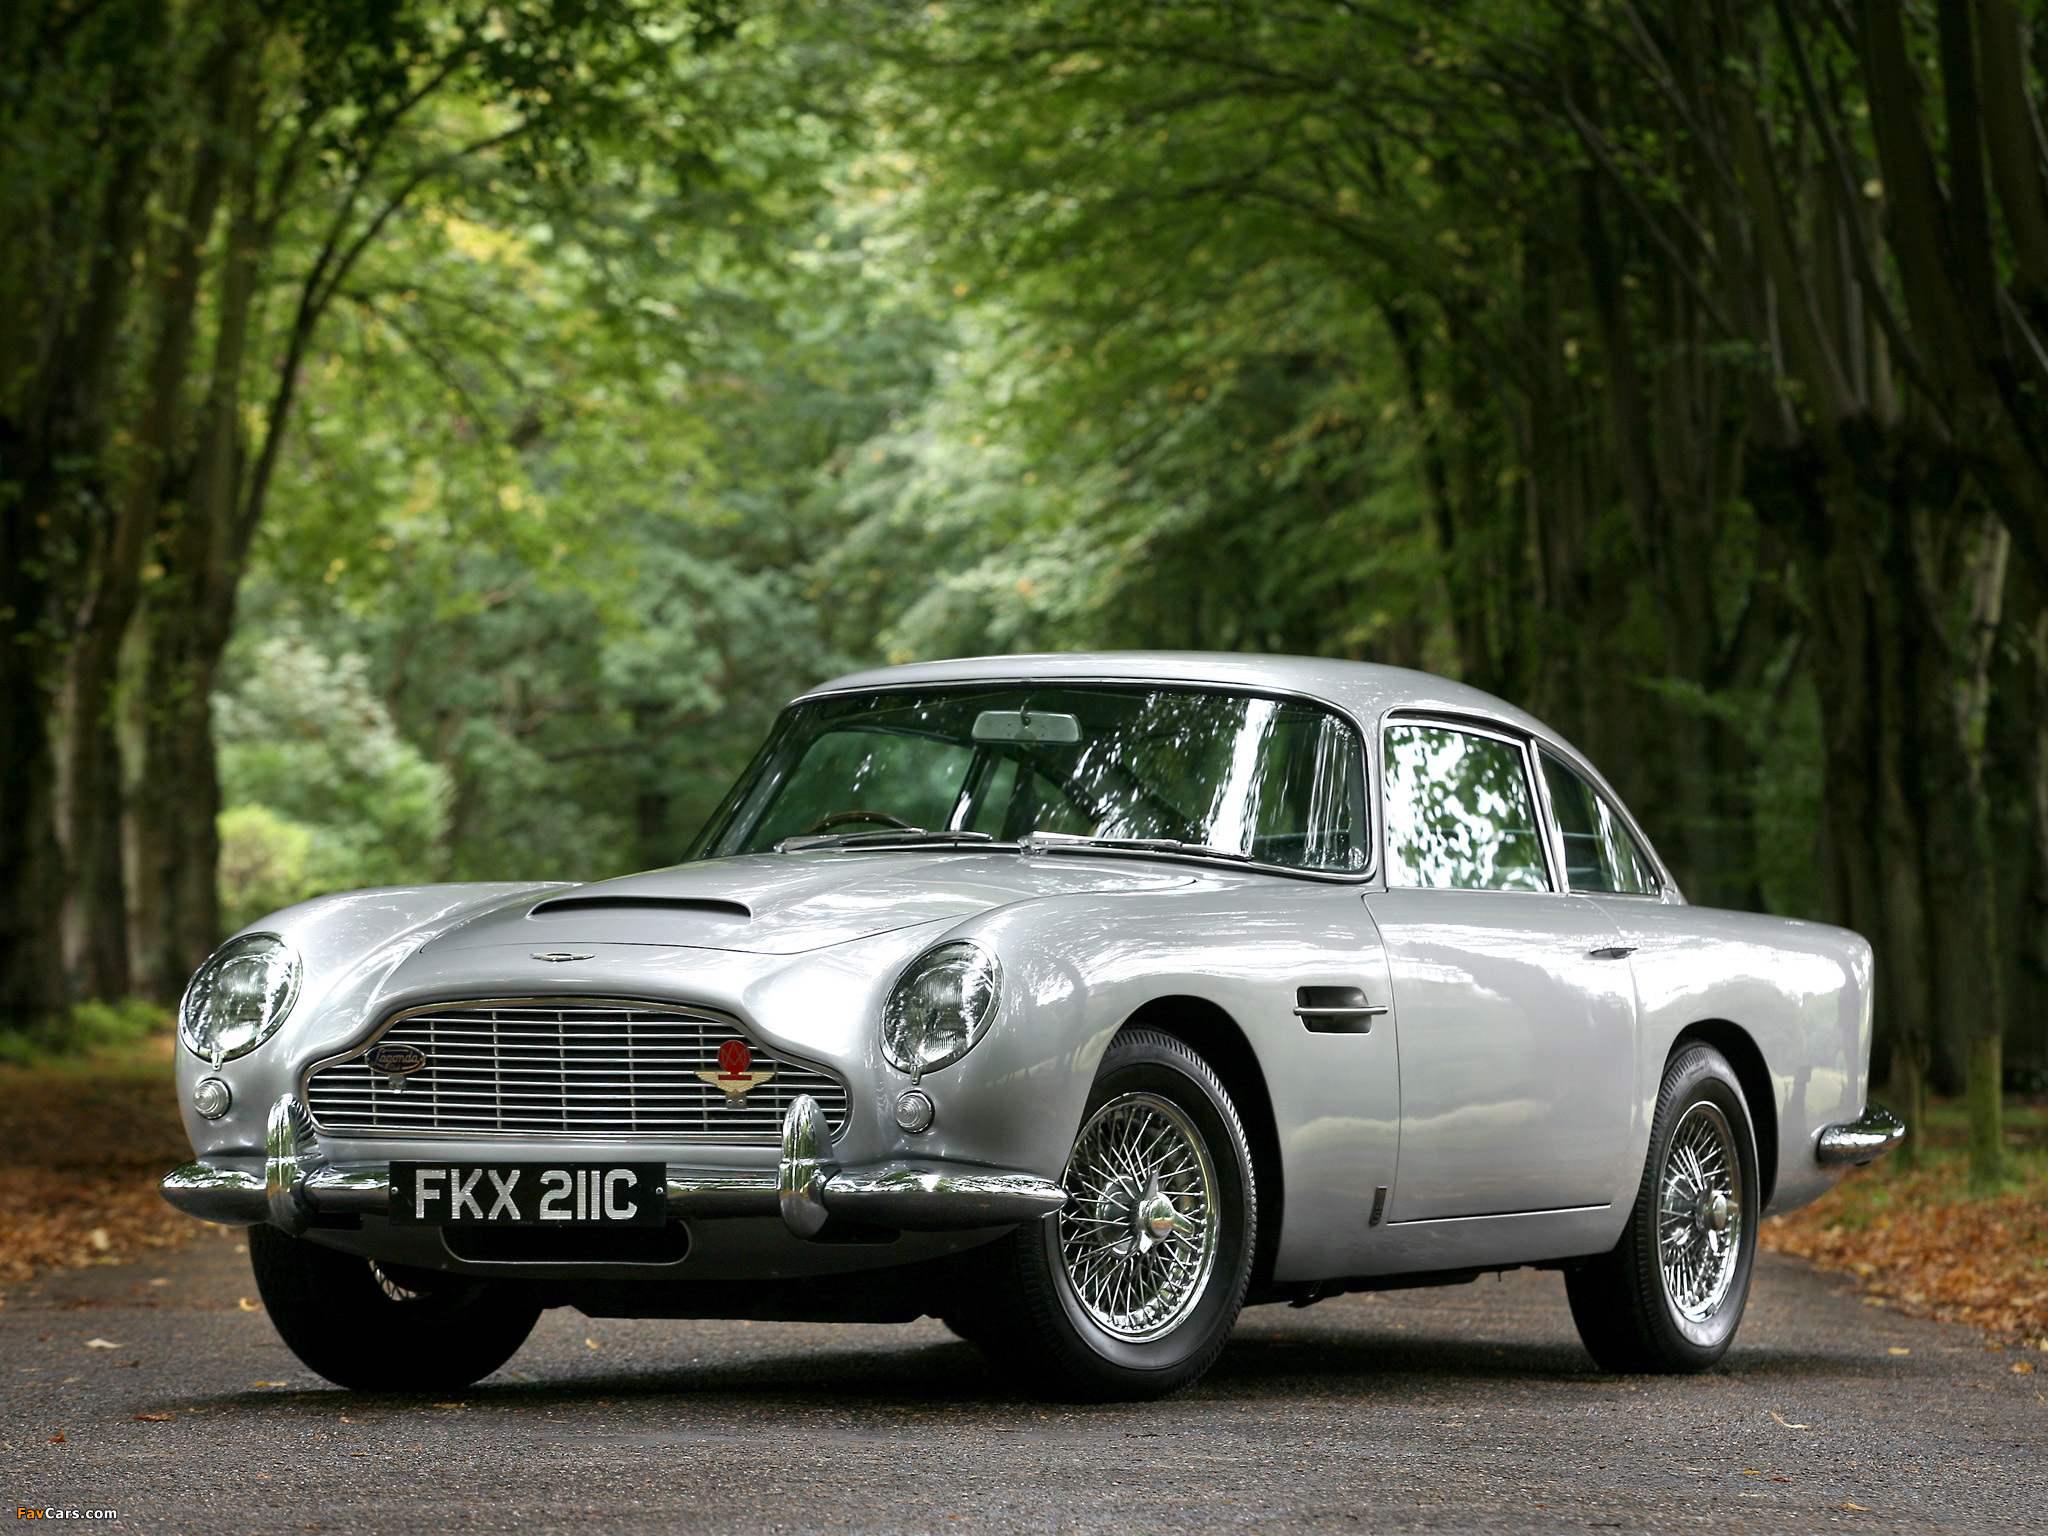 aston martin db5 uk spec 1963 1965 images 2048x1536. Black Bedroom Furniture Sets. Home Design Ideas